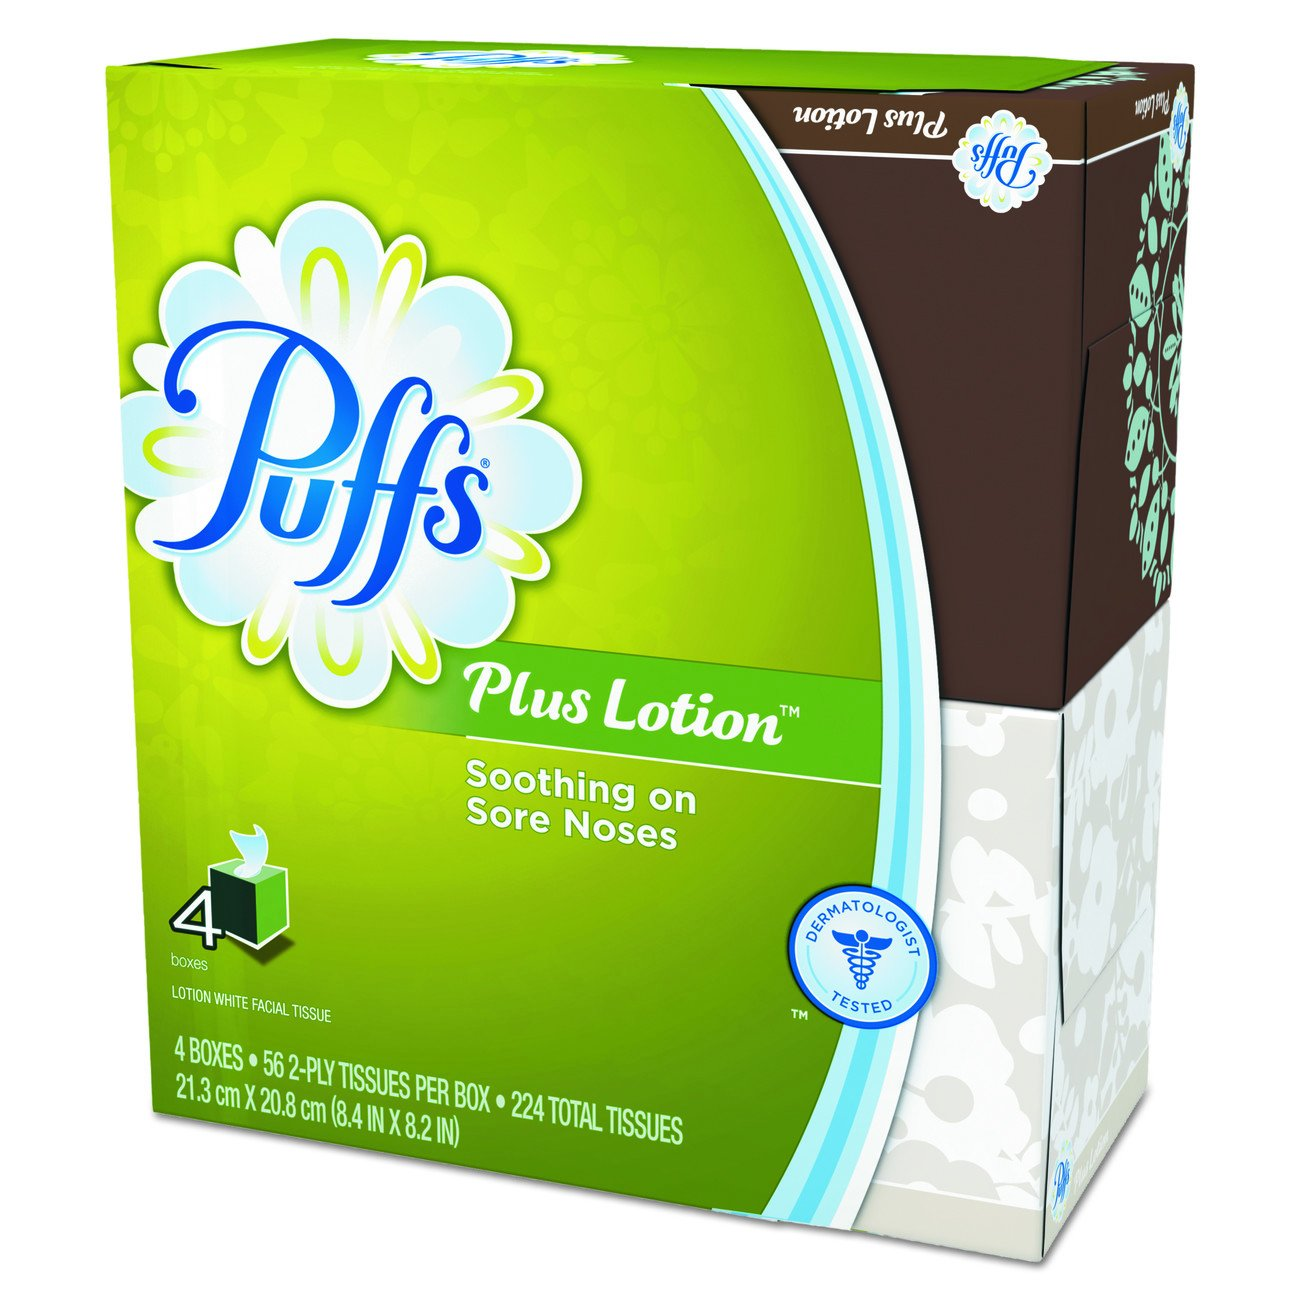 Puffs Plus Lotion Facial Tissues,4 count,pack of 6 product image